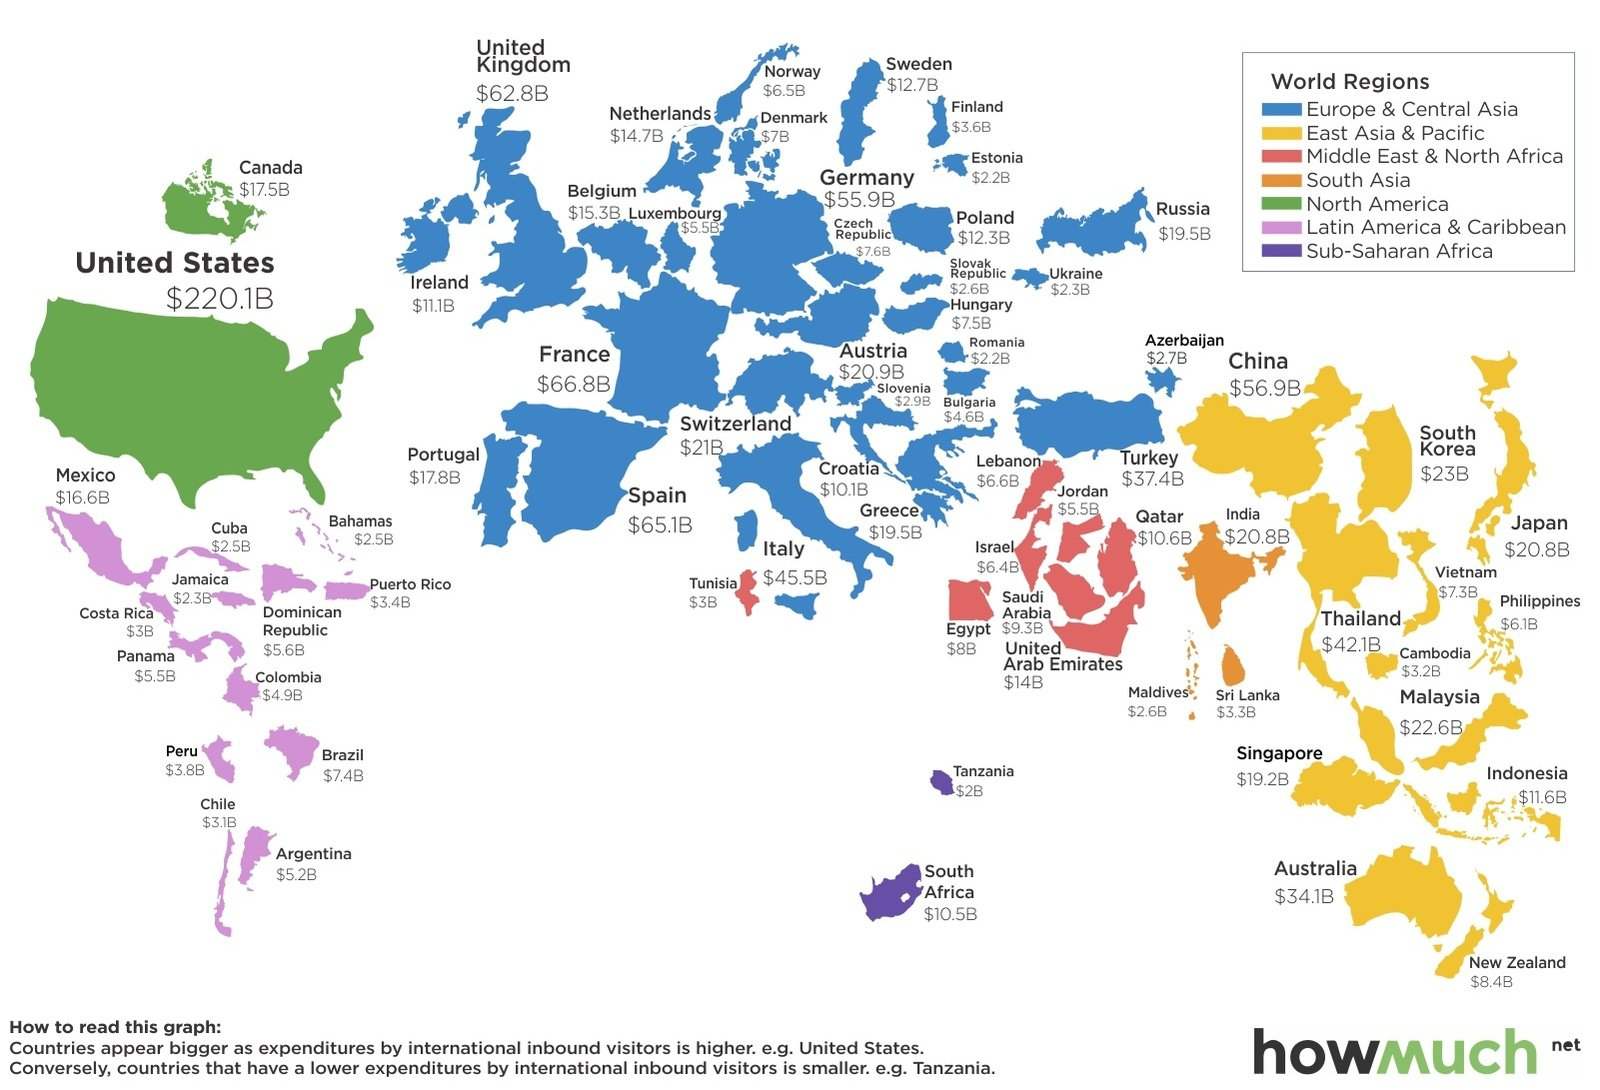 tourism-expenditure-by-country-1.jpg